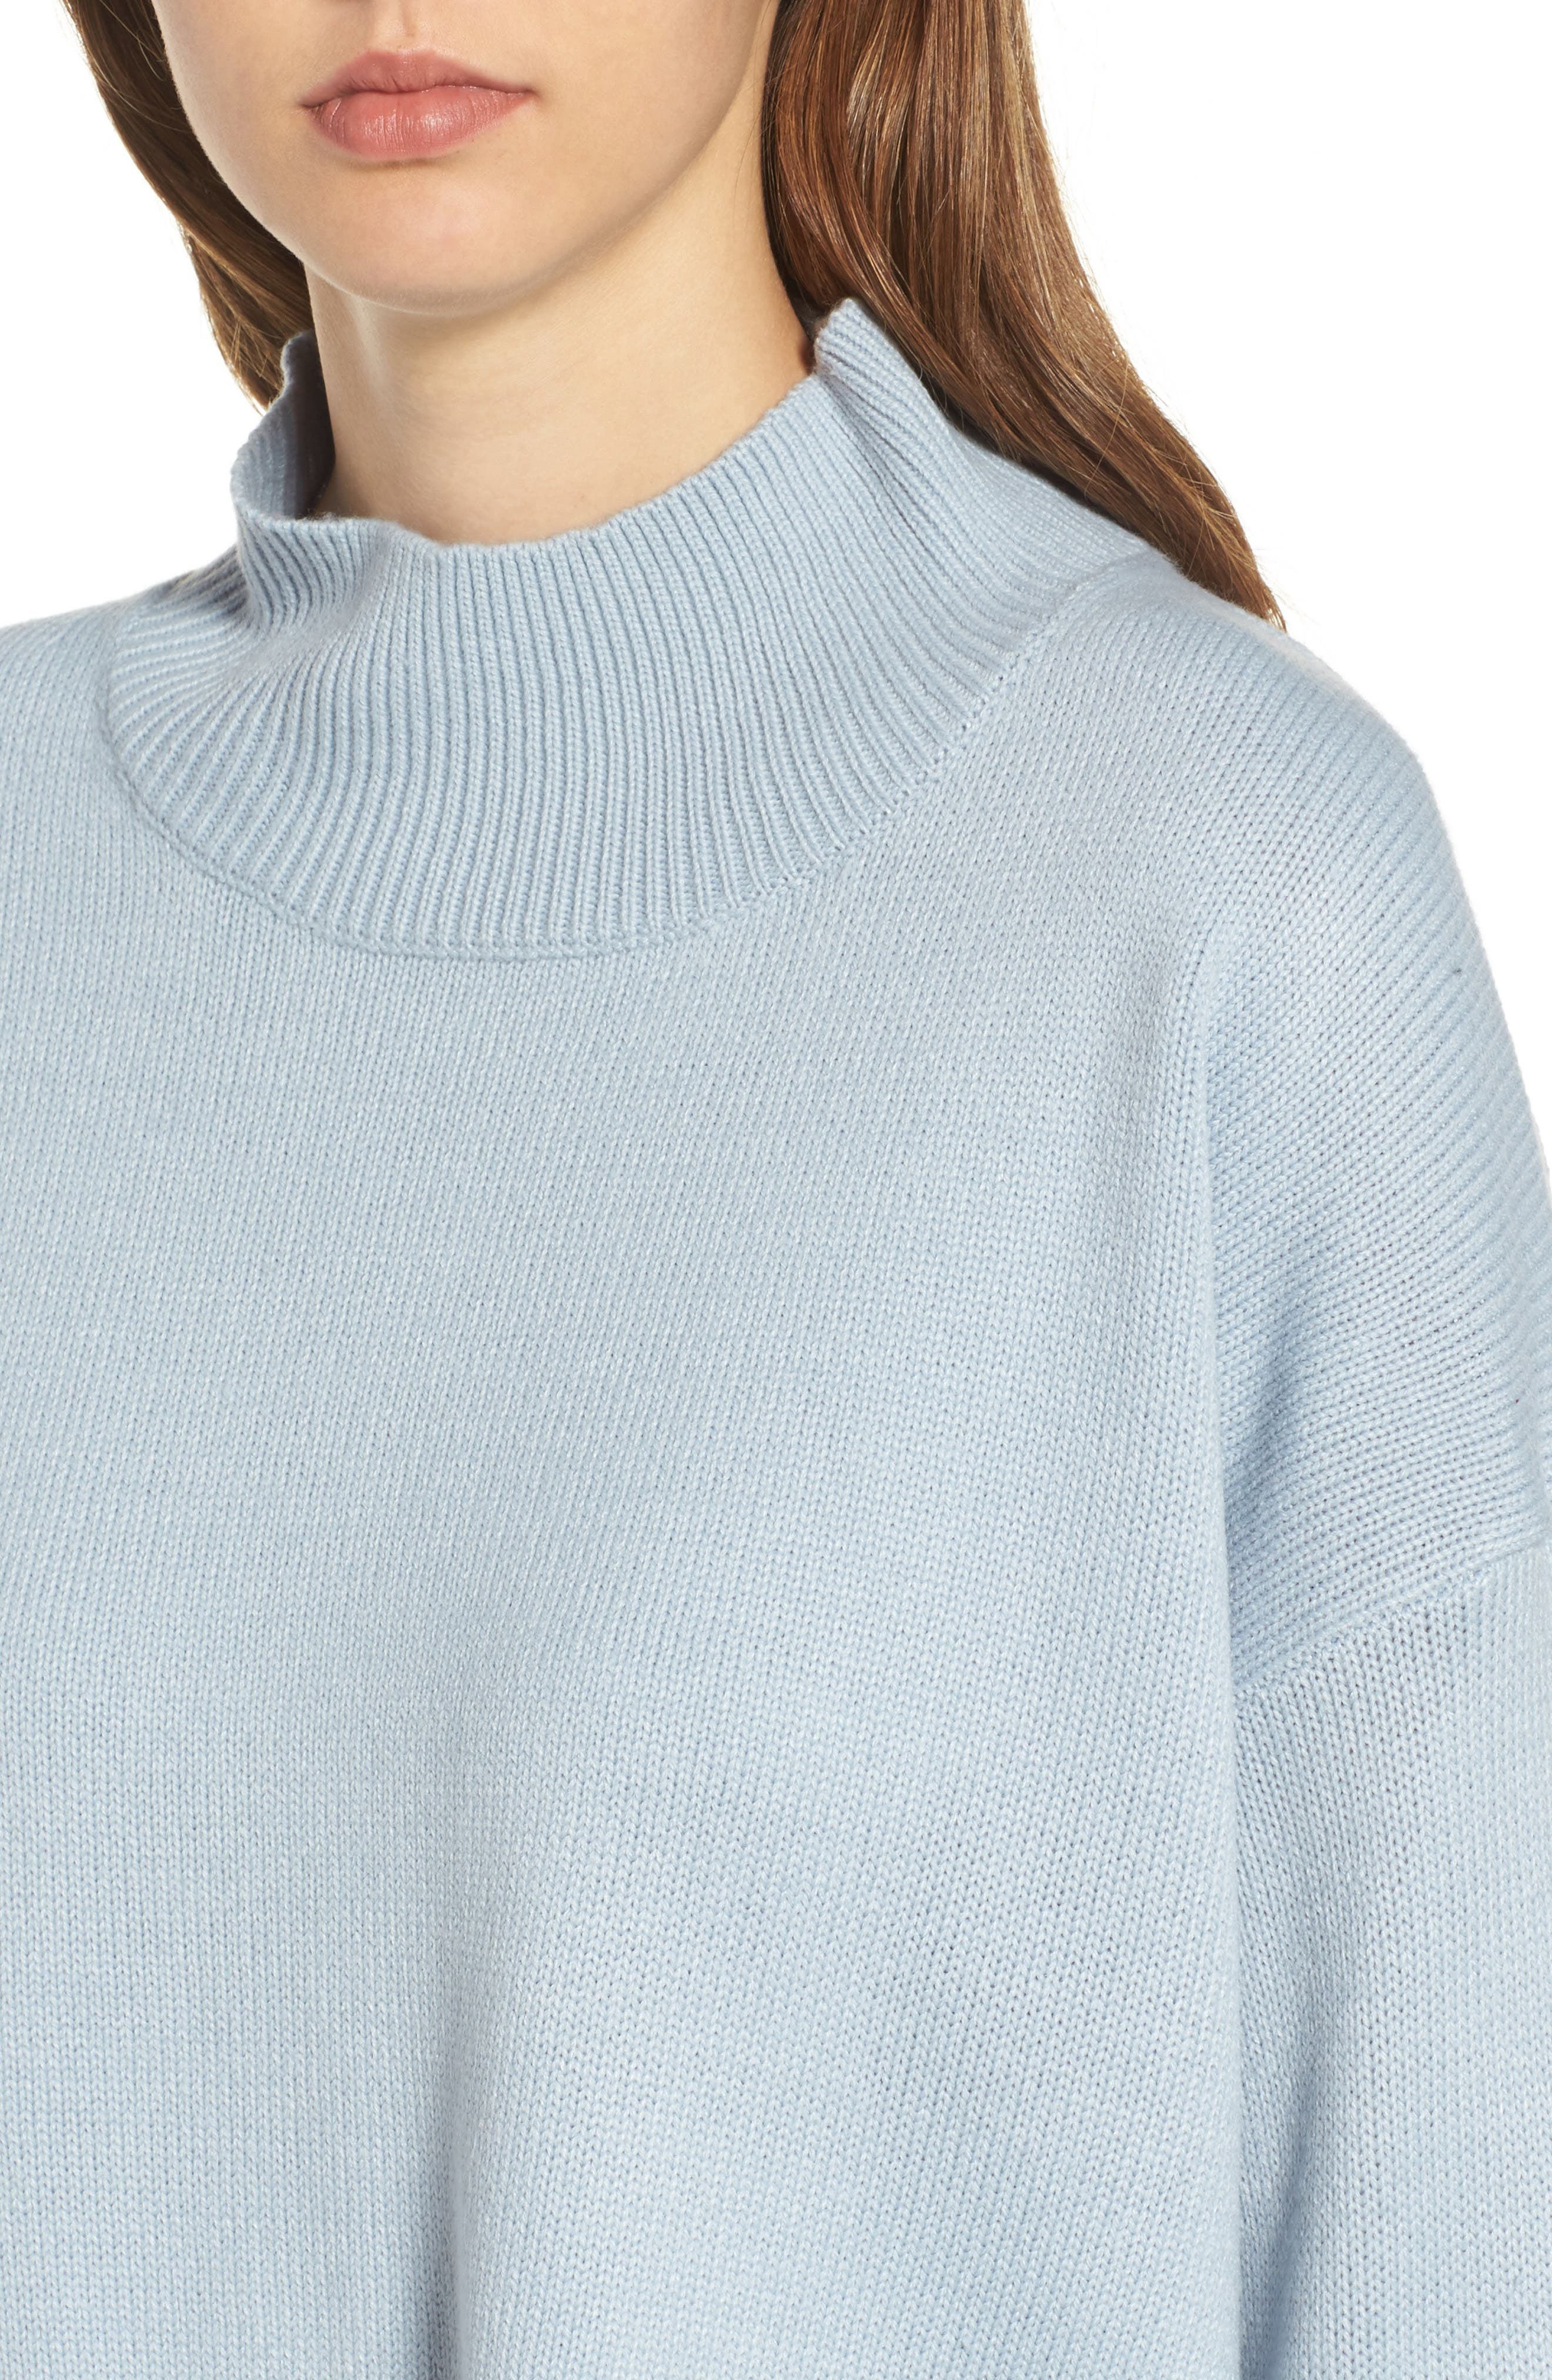 Oversize Sweater,                             Alternate thumbnail 4, color,                             400